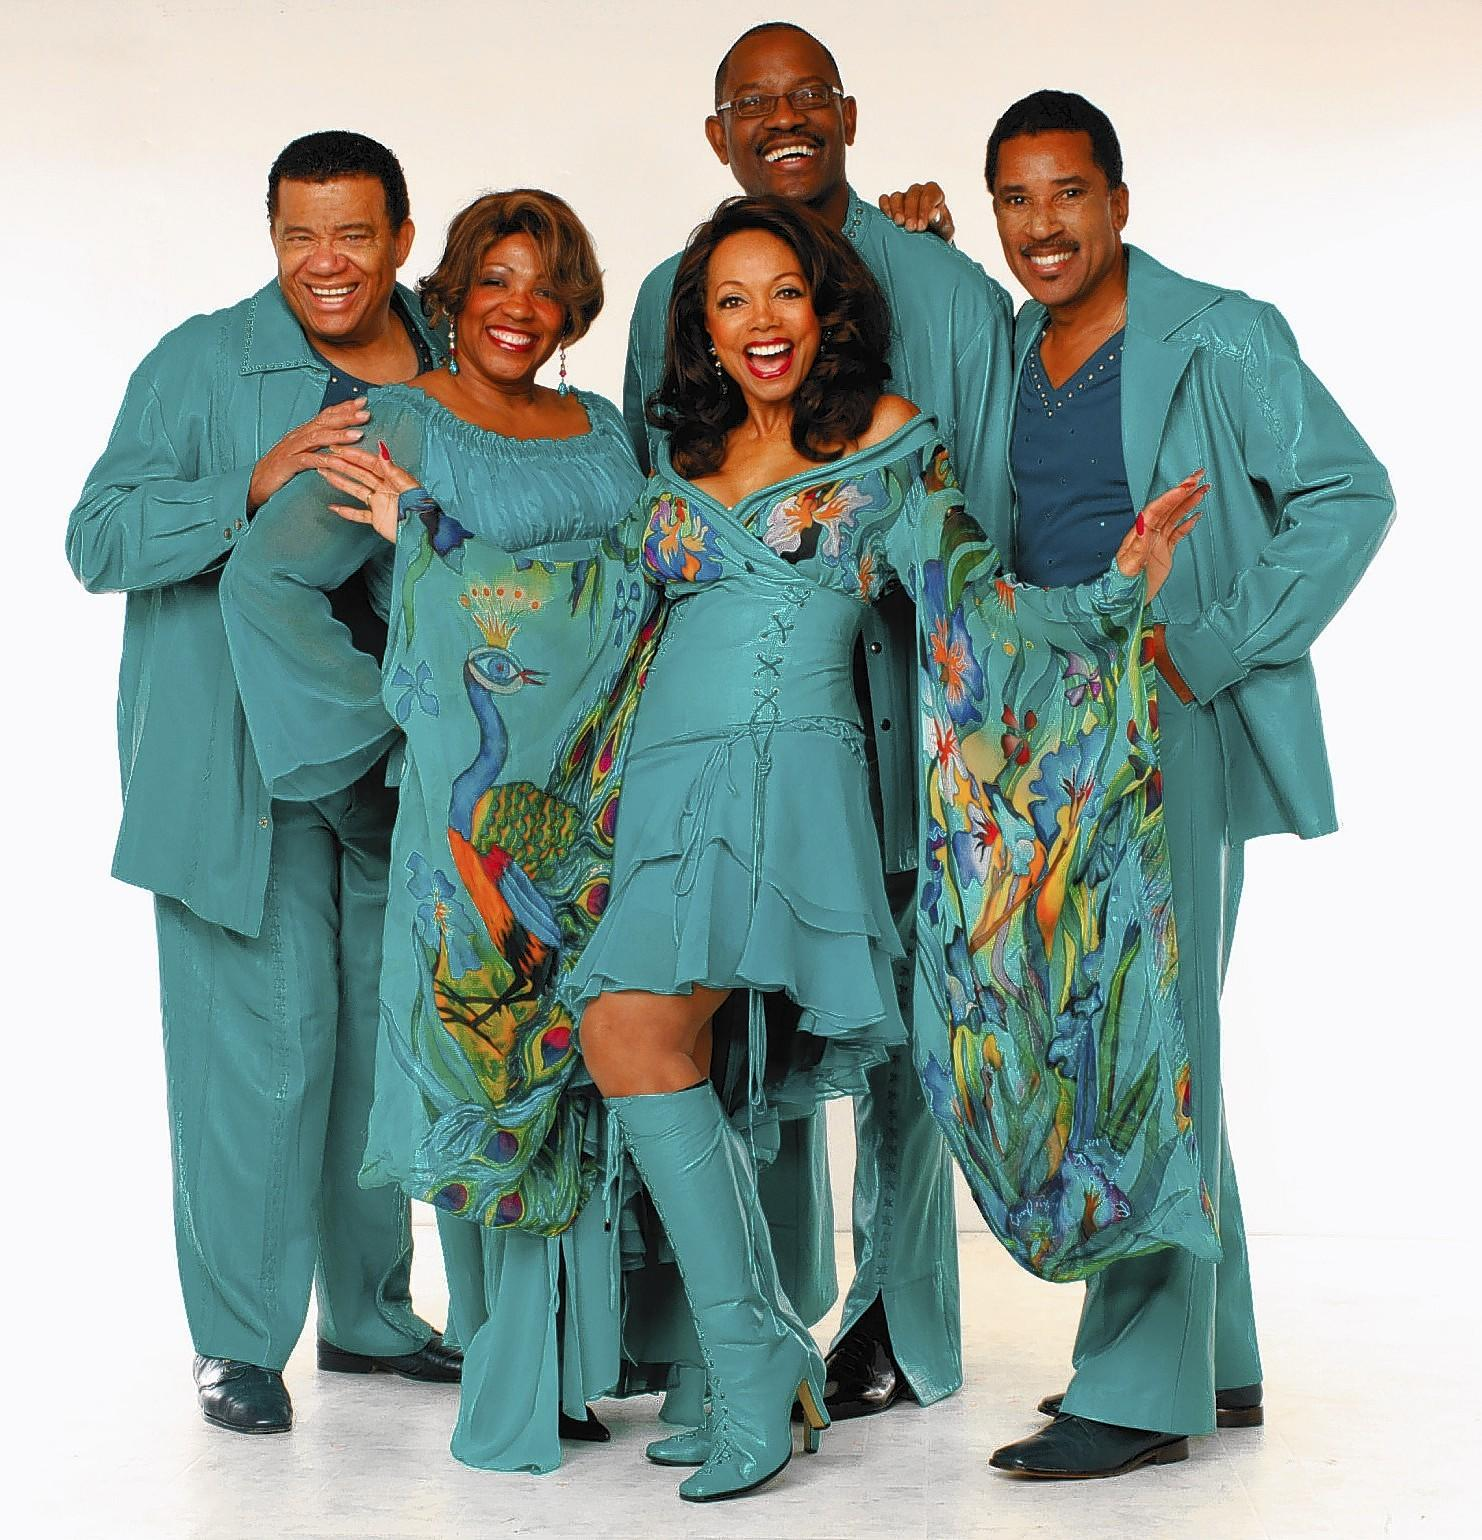 The 5th Dimension is scheduled to perform at The Ferguson Center for the Arts in Newport News on Feb. 14, 2014.